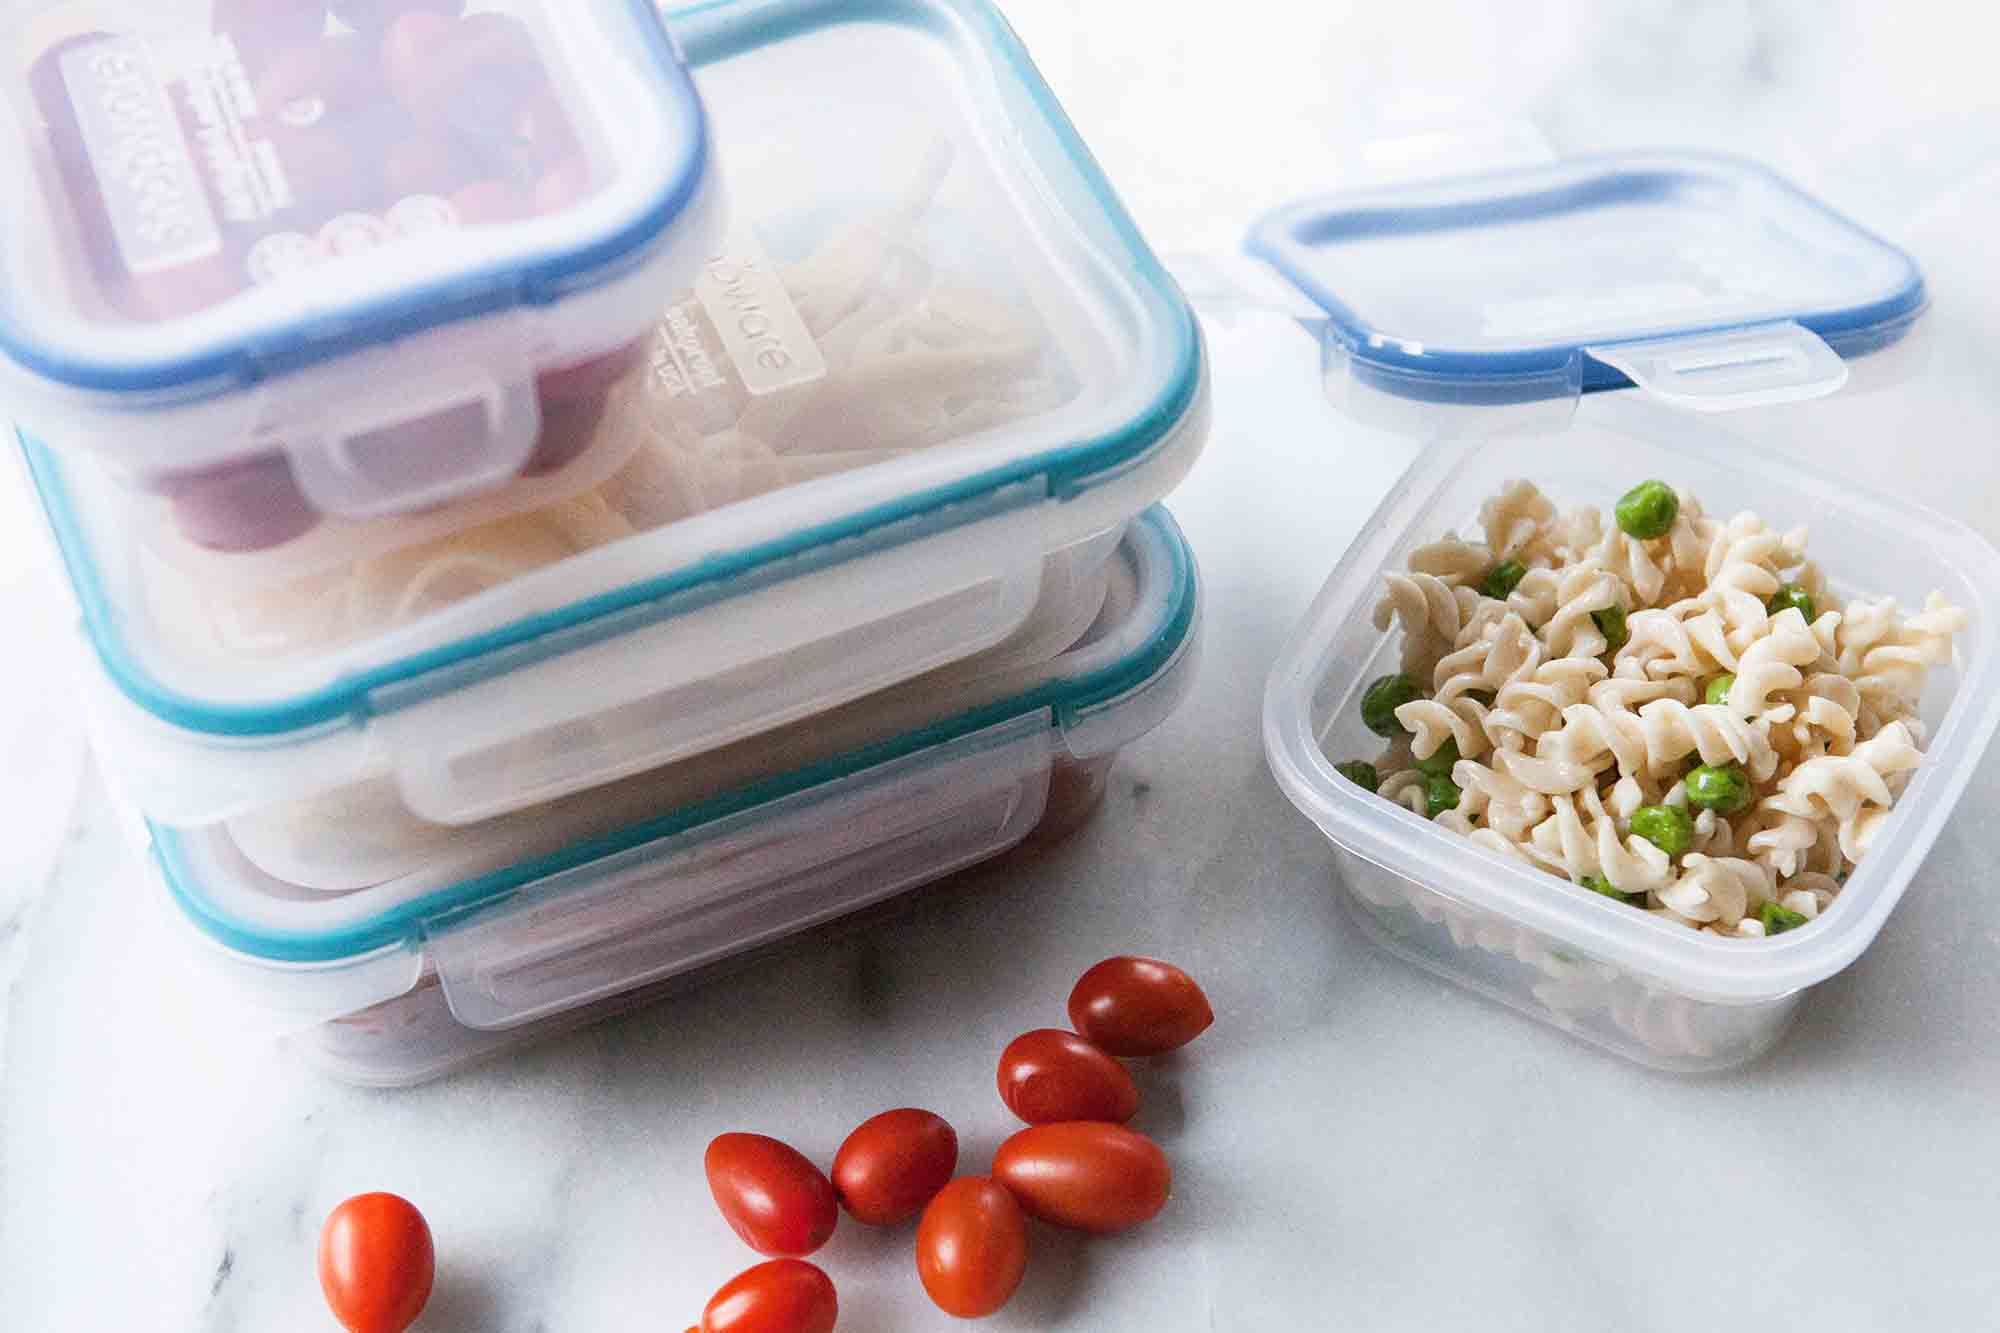 Food Storage Containers - Storing leftovers